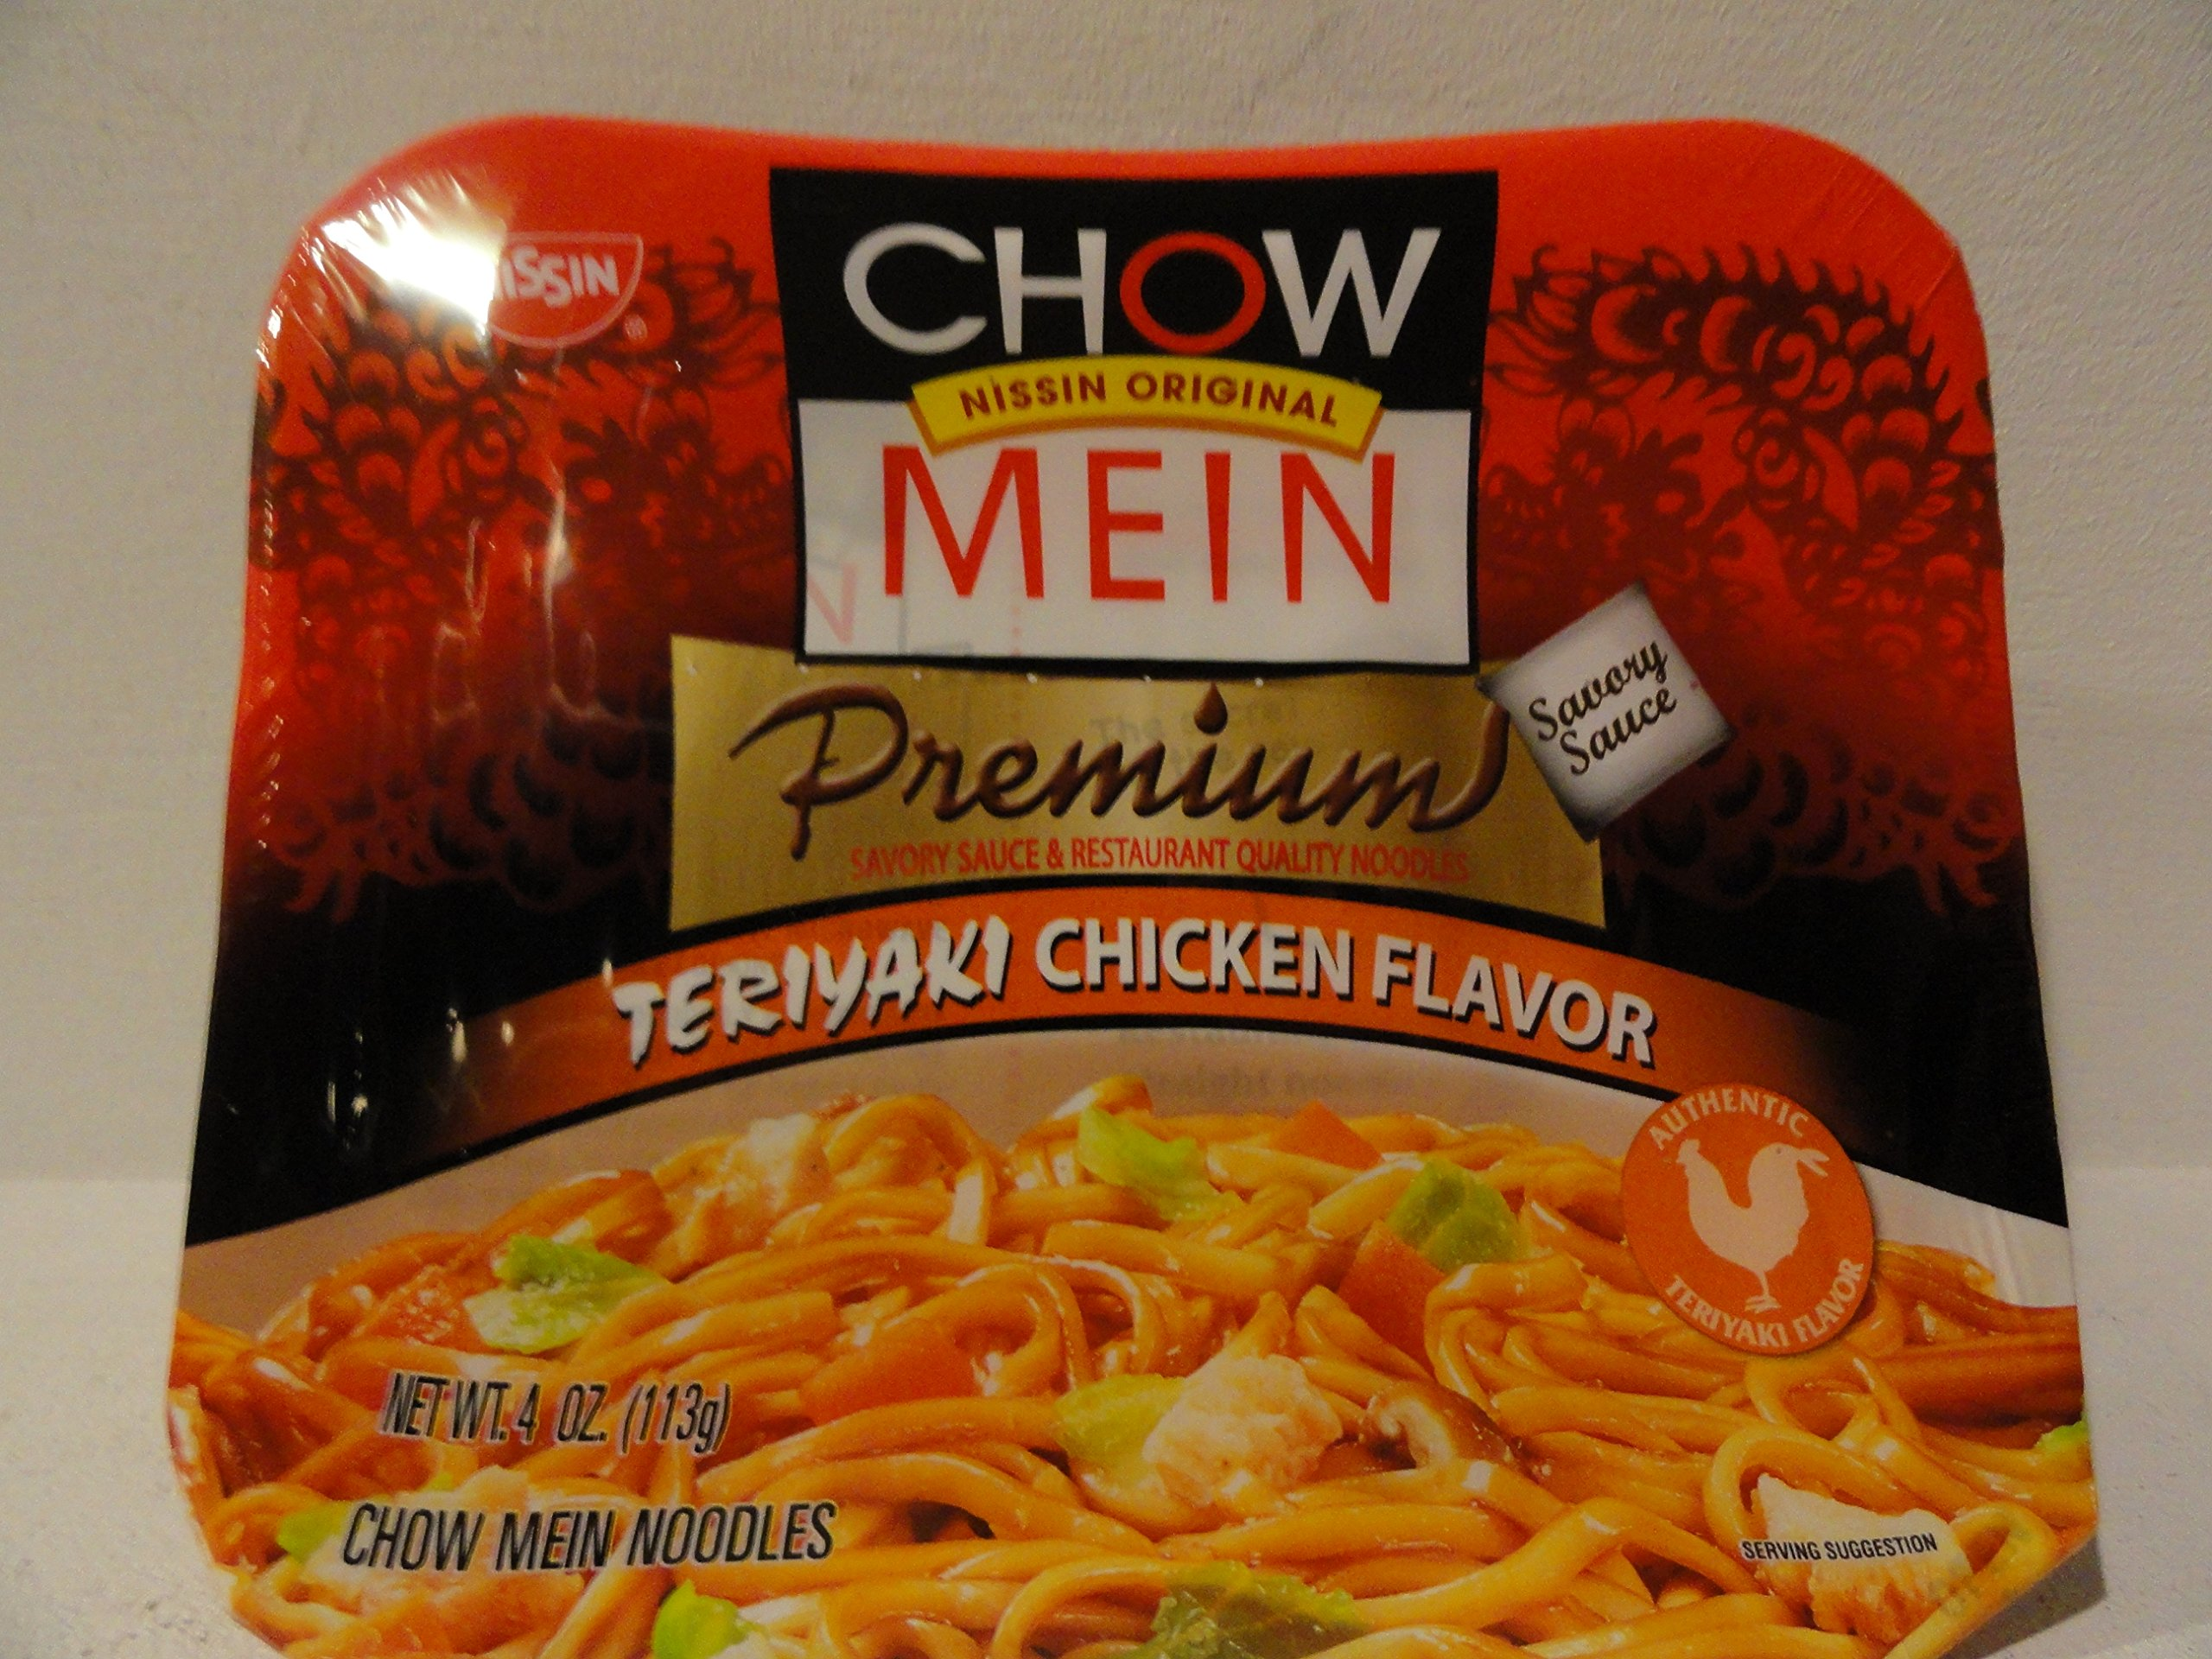 Chow Mein Instant Noodle (Teriyaki Chicken Flavor) - 4oz [Pack of 3]